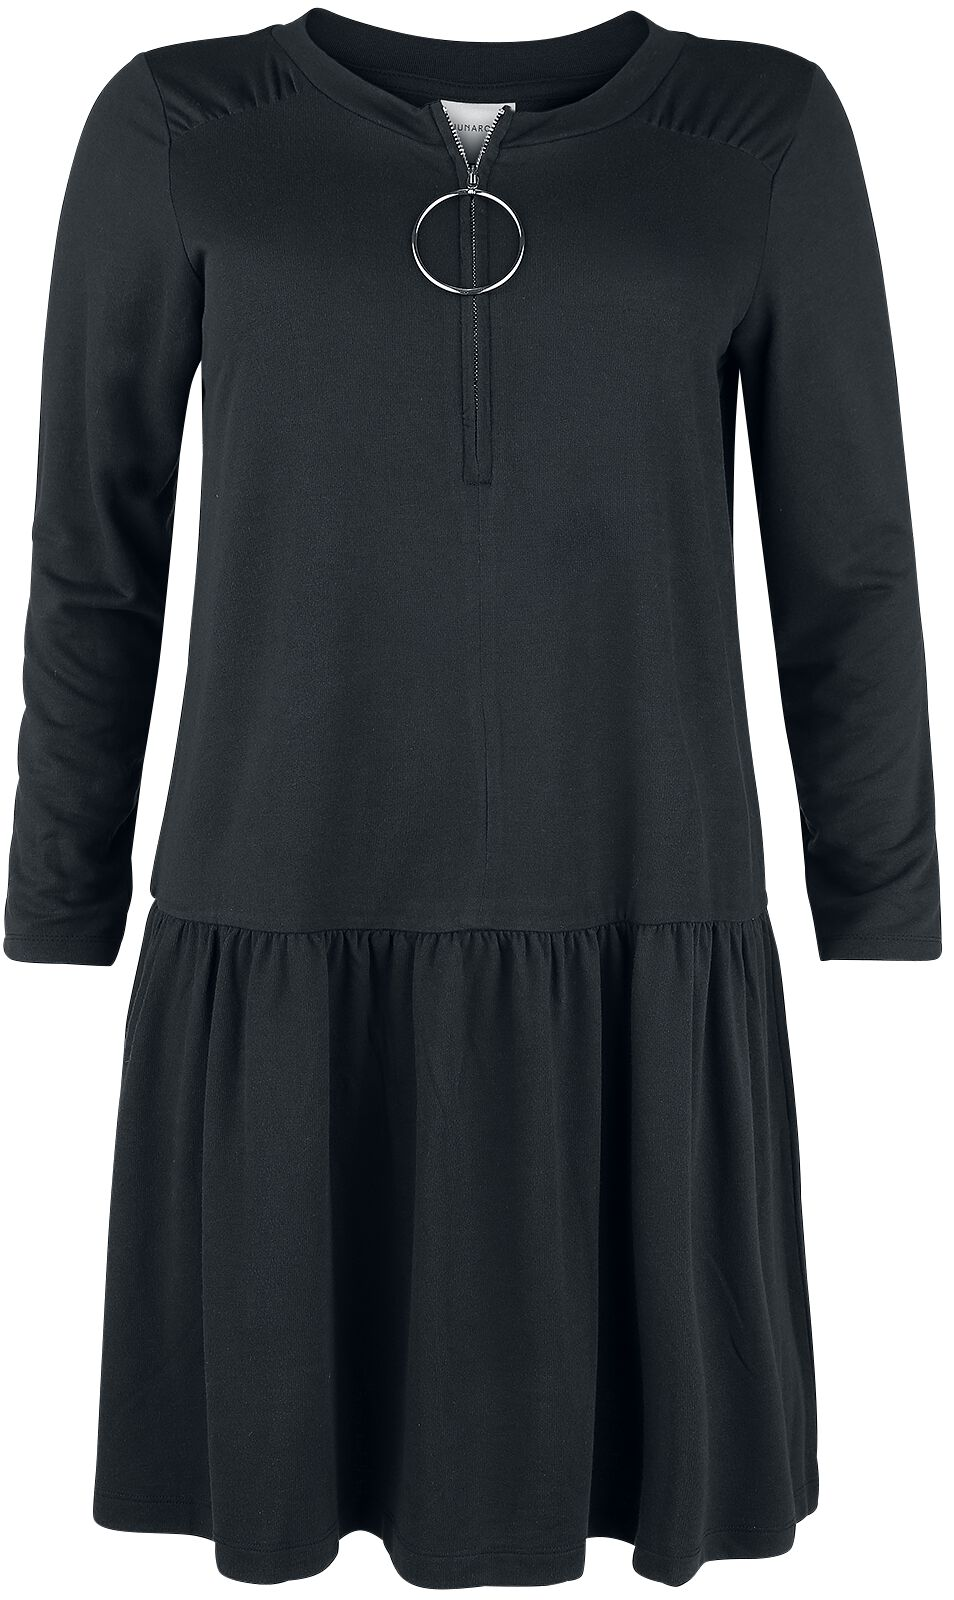 Image of   Junarose Cirkel LS Above Knee Dress Kjole sort